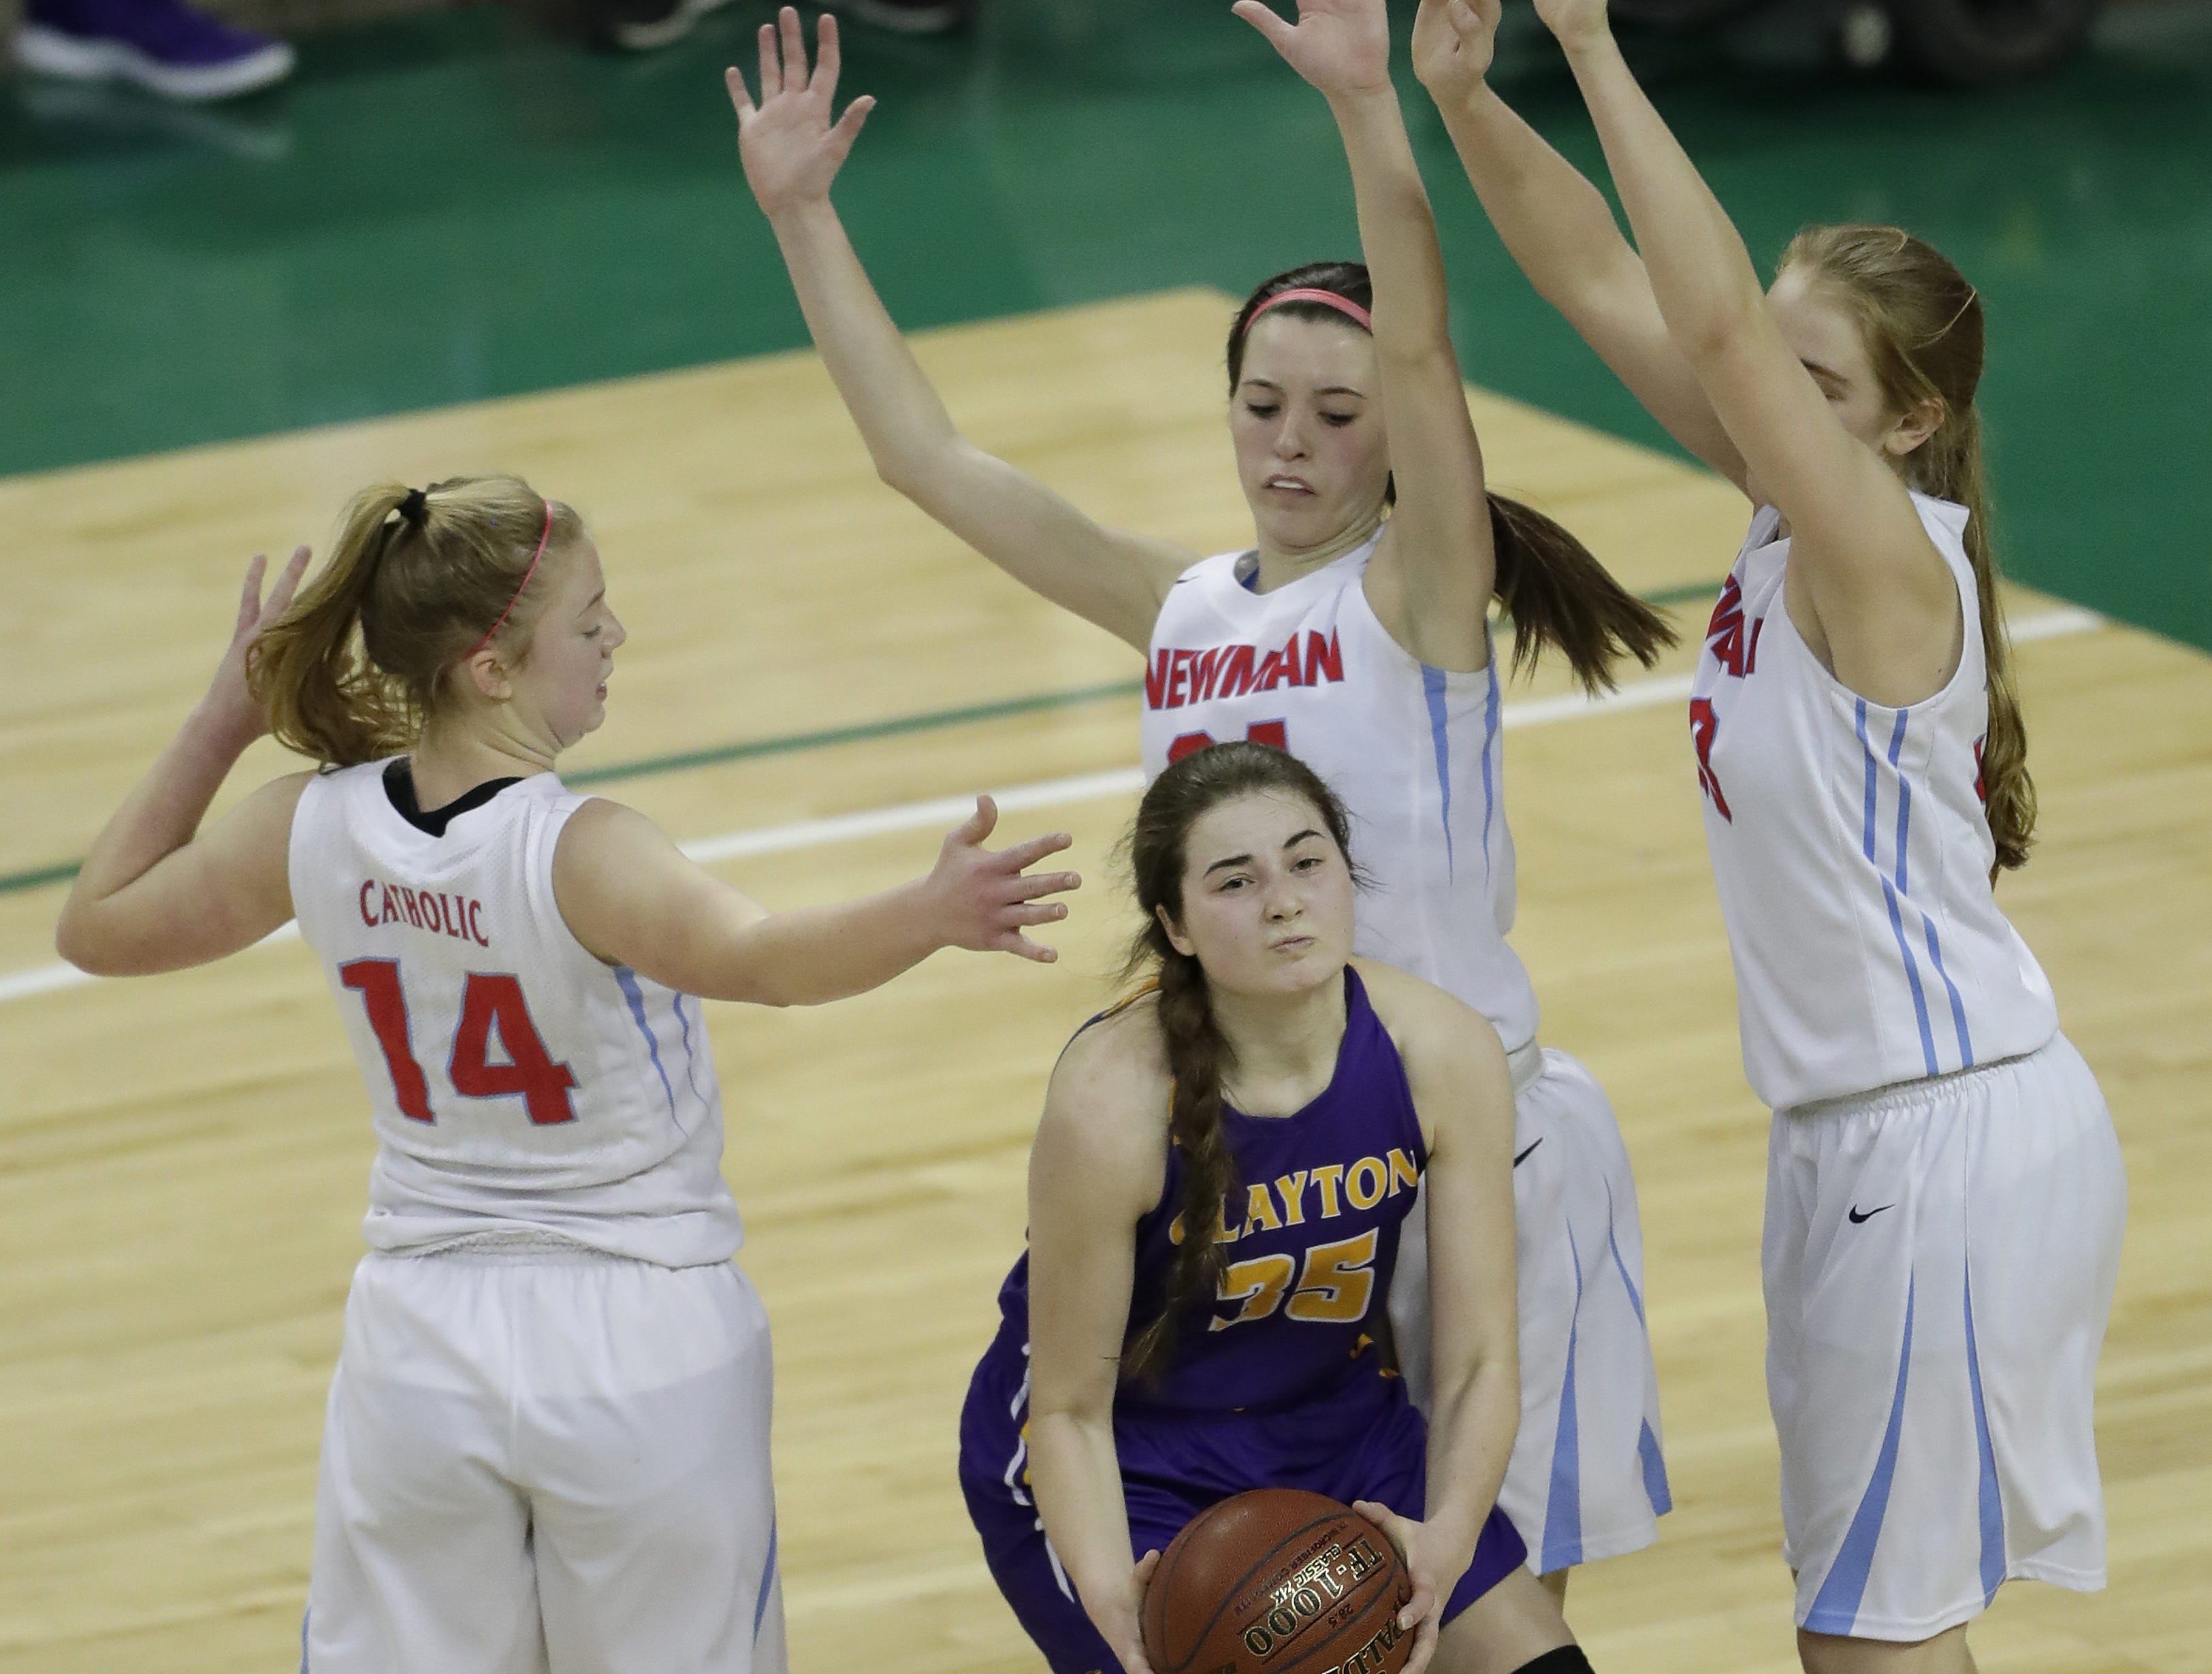 Wausau Newman Catholic's Jaida Heinz (14),  Julia Seidel (34) and Jadelyn Ganski (33) defend against Clayton's Kennedy Patrick (35) during their Division 5 semifinal game at the WIAA girls state basketball tournament Friday, March 8, 2019, at the Resch Center in Ashwaubenon, Wis.  Dan Powers/USA TODAY NETWORK-Wisconsin